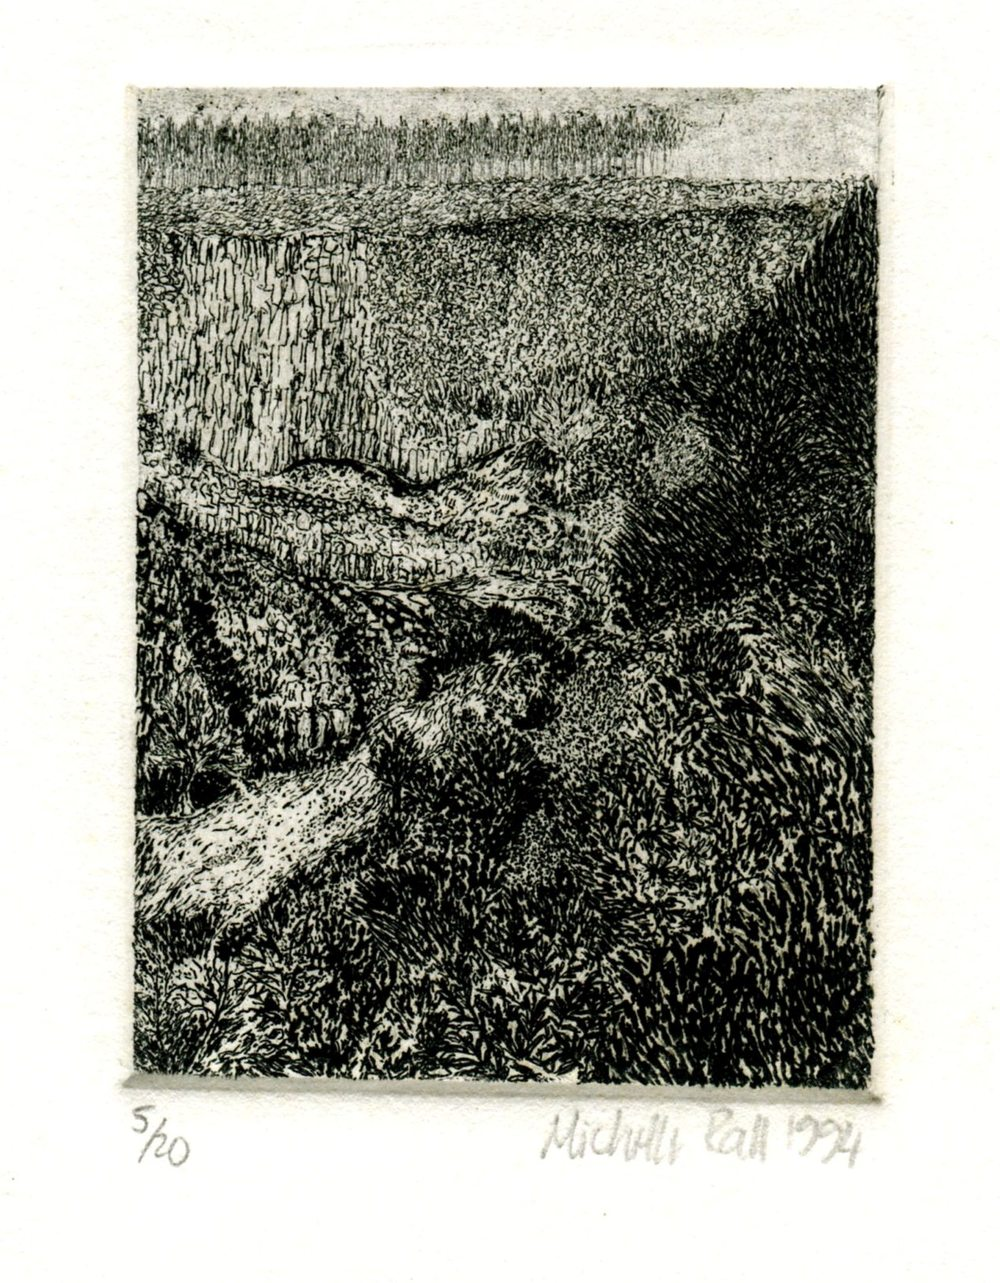 Rall, Michelle  69b Near Storms River, Etching.